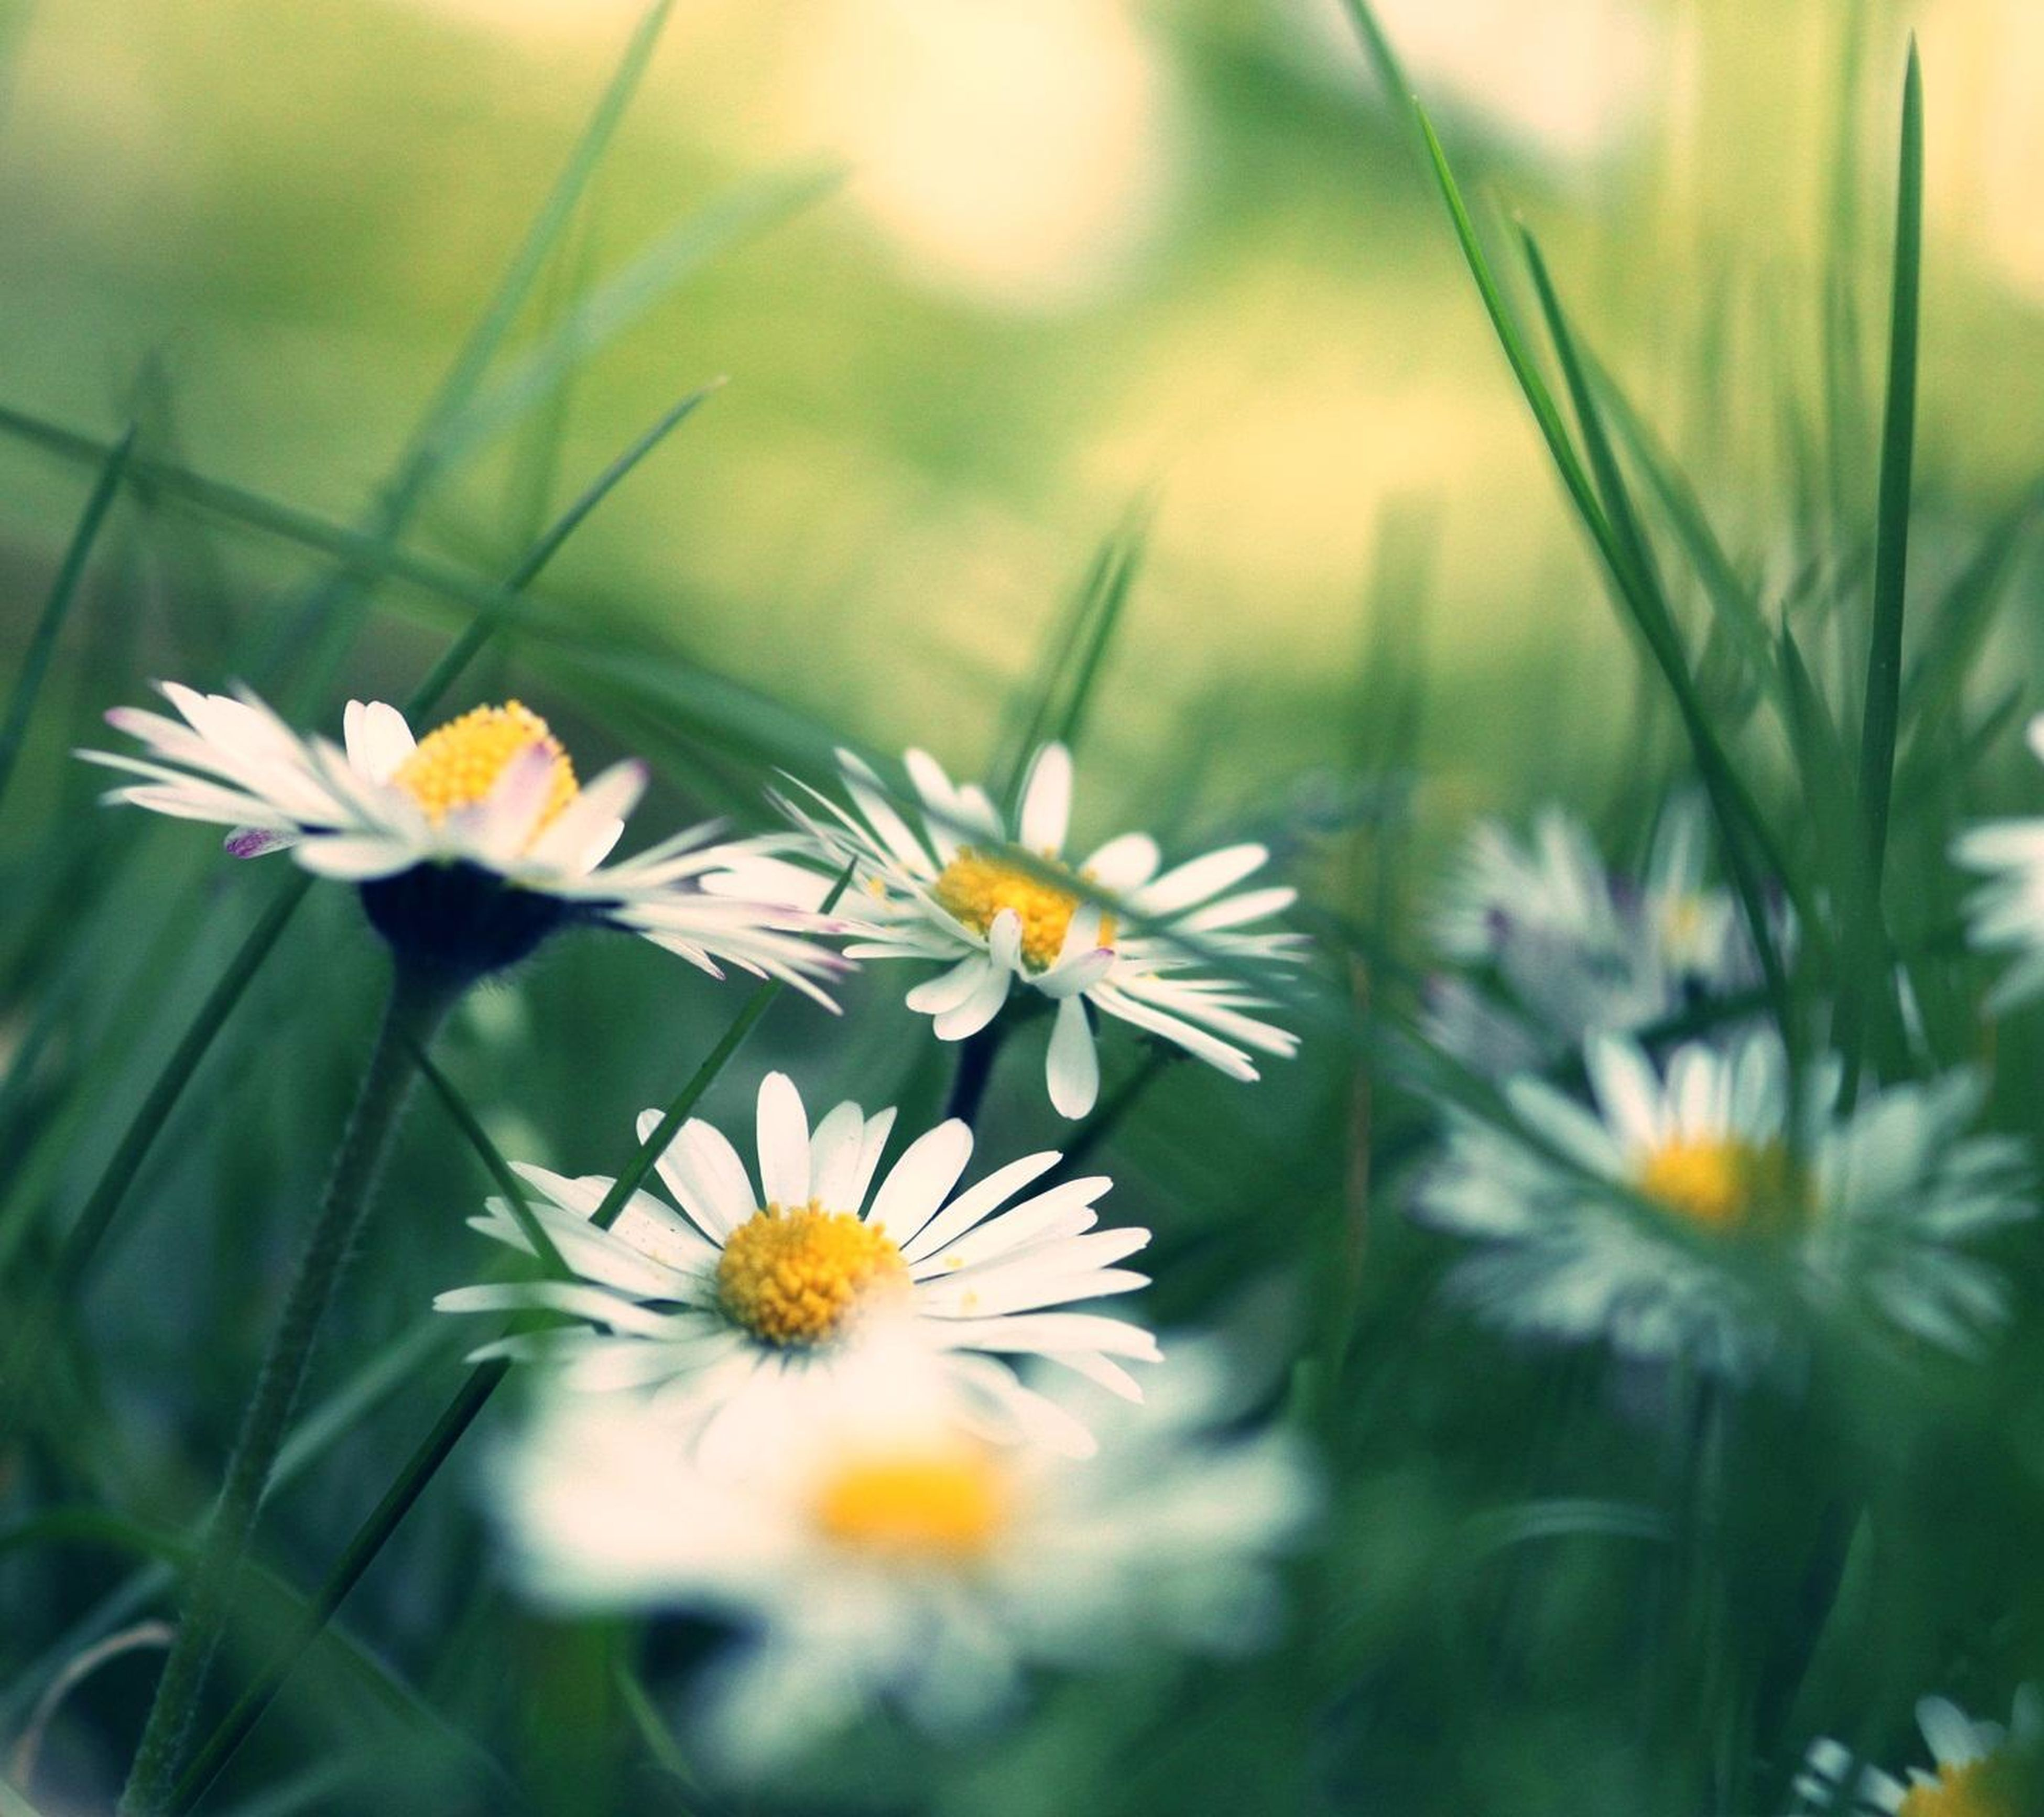 flower, freshness, fragility, growth, petal, flower head, beauty in nature, plant, nature, blooming, focus on foreground, yellow, close-up, white color, stem, daisy, field, selective focus, in bloom, wildflower